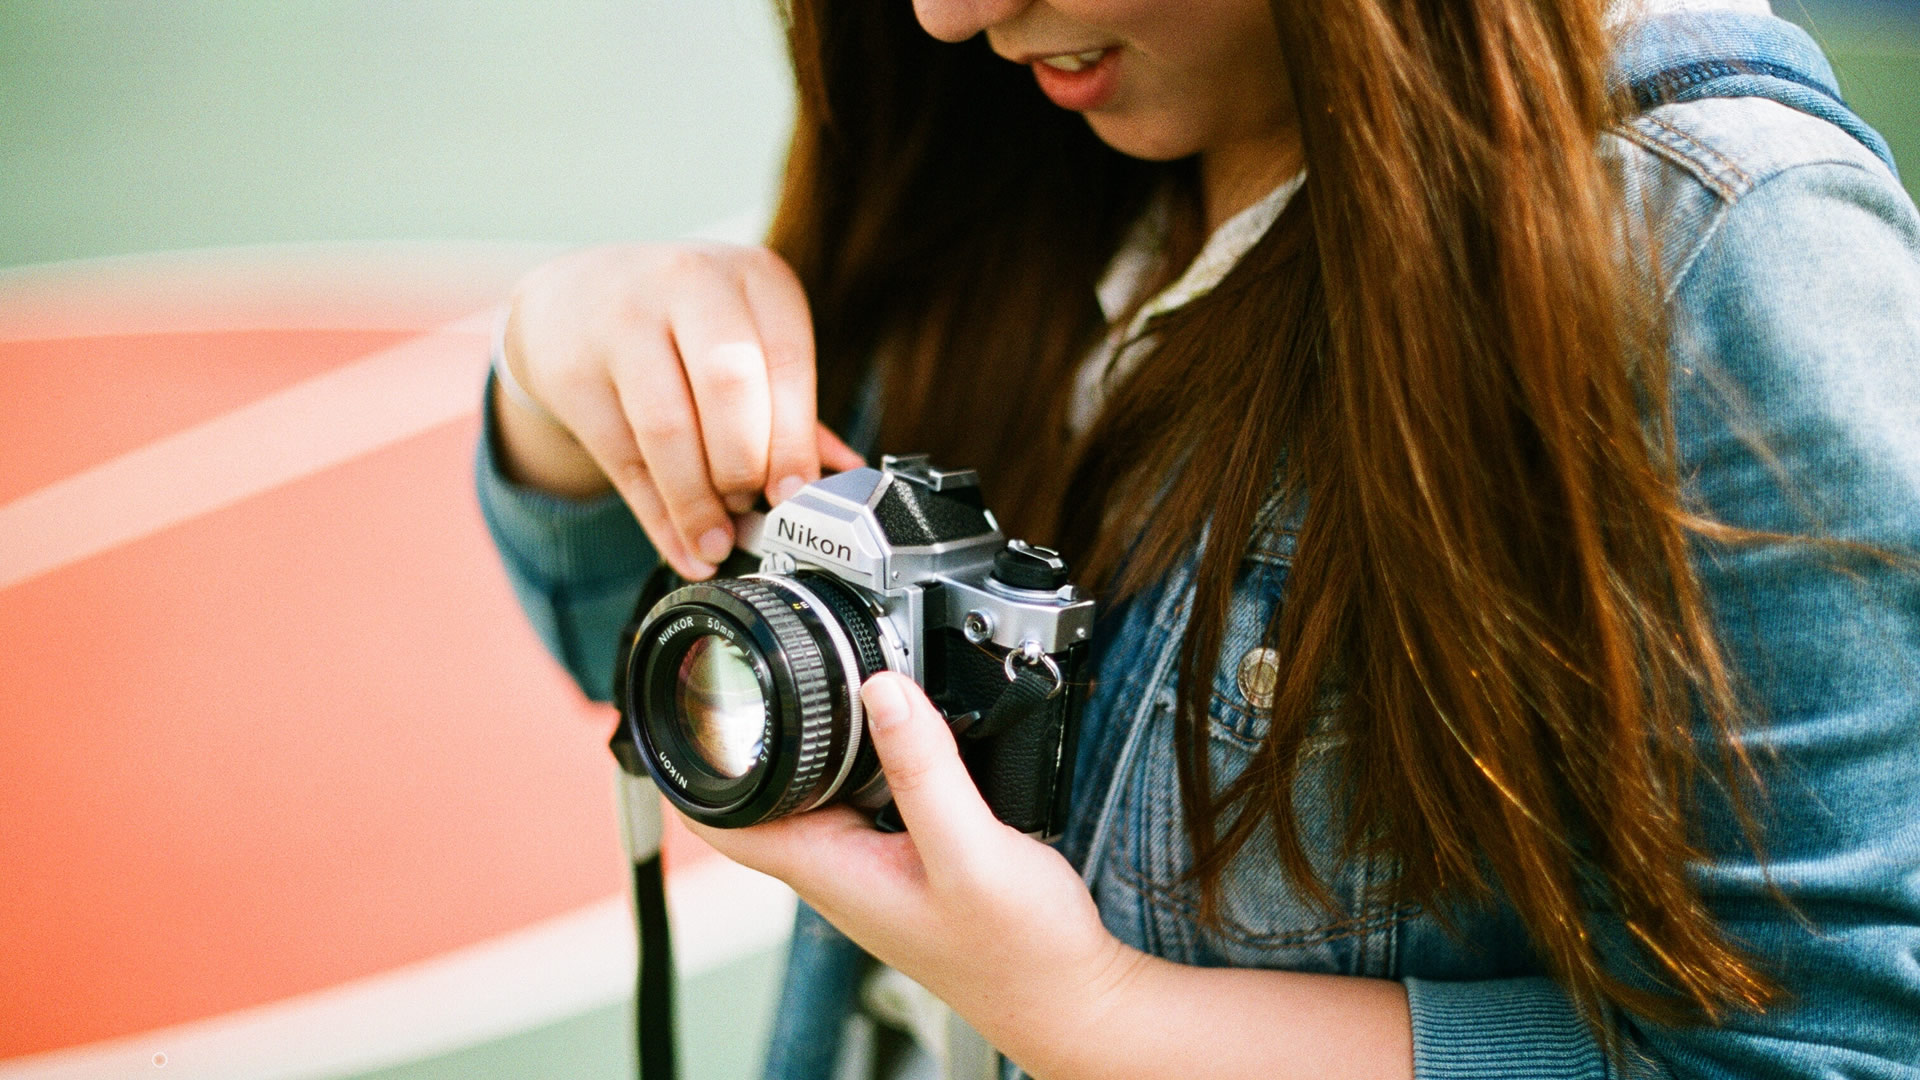 barry-casson-film-and-video-photo-by-joseph-chan-256794-unsplash